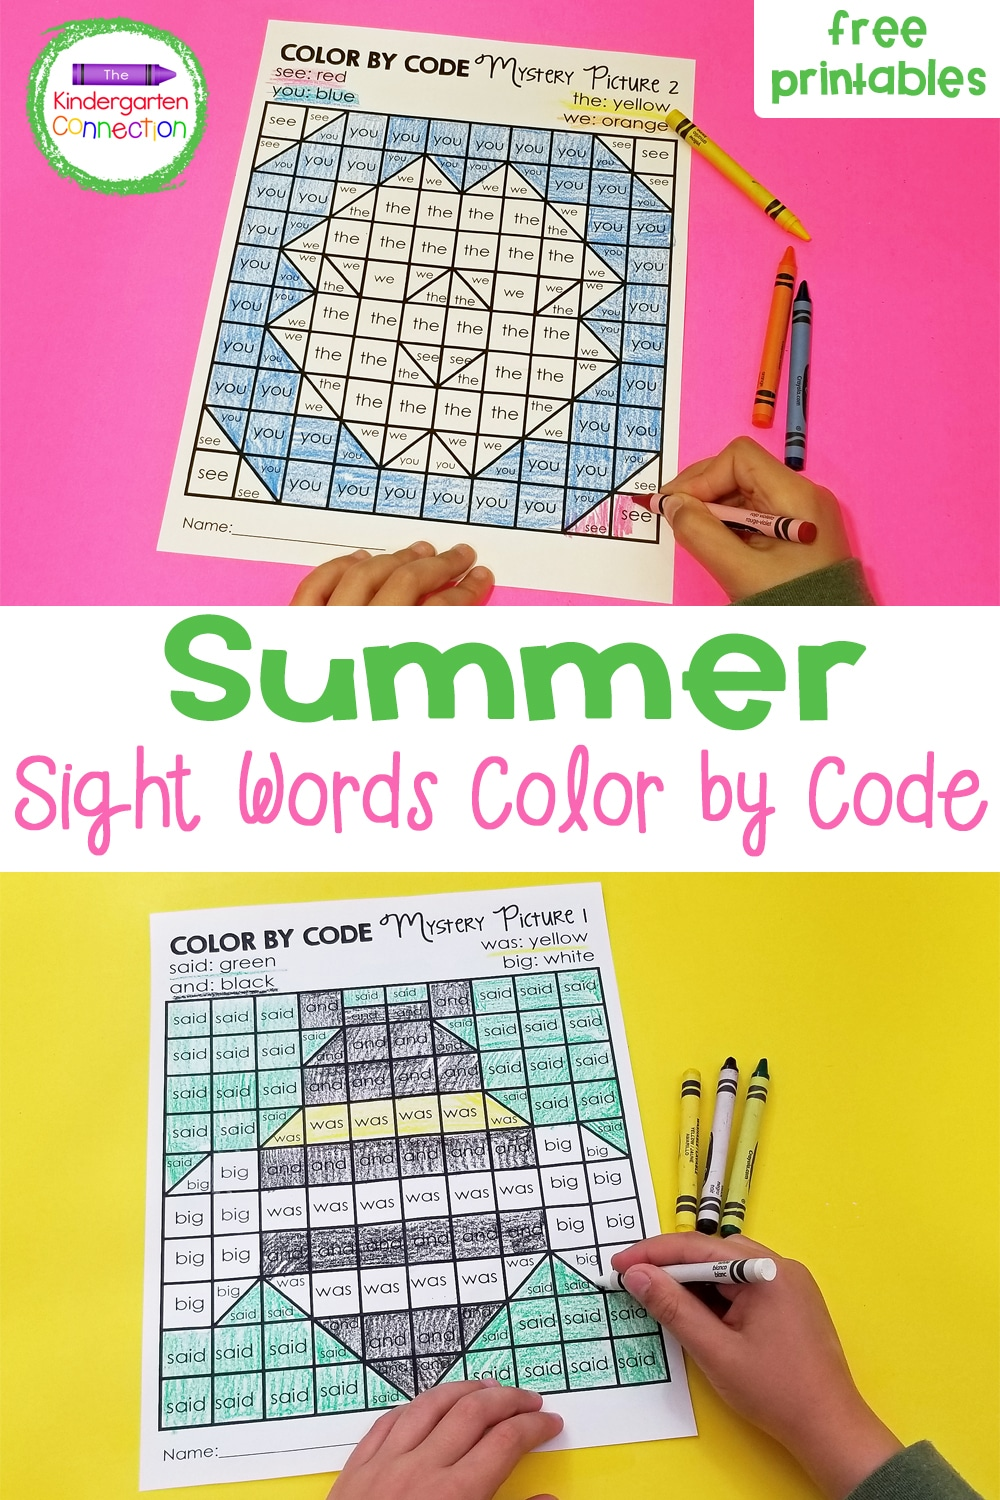 These free Summer Sight Word Color by Code Printables are perfect for Kindergarten independent work or to send home for practice over break!